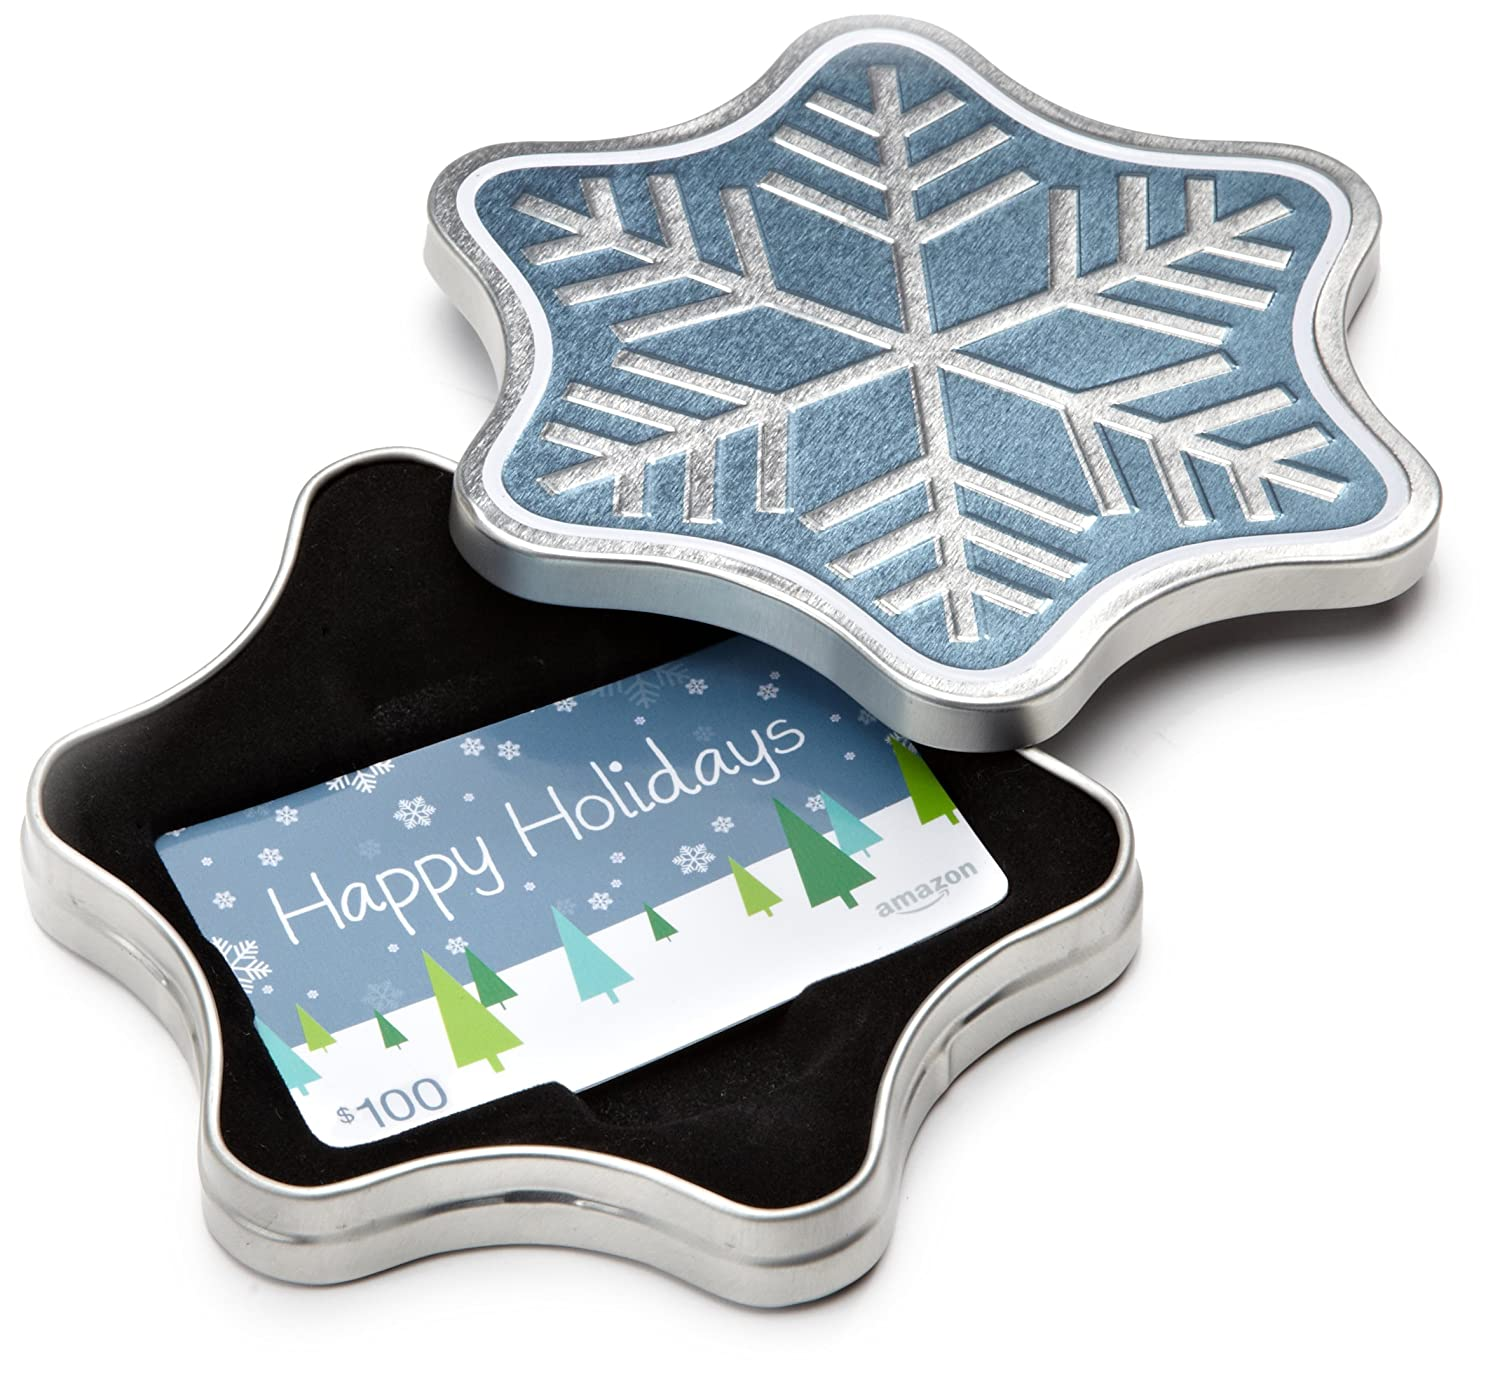 Amazon.ca Gift Card in a Snowflake Tin (Happy Holidays Card Design) Amazon.com.ca Inc.